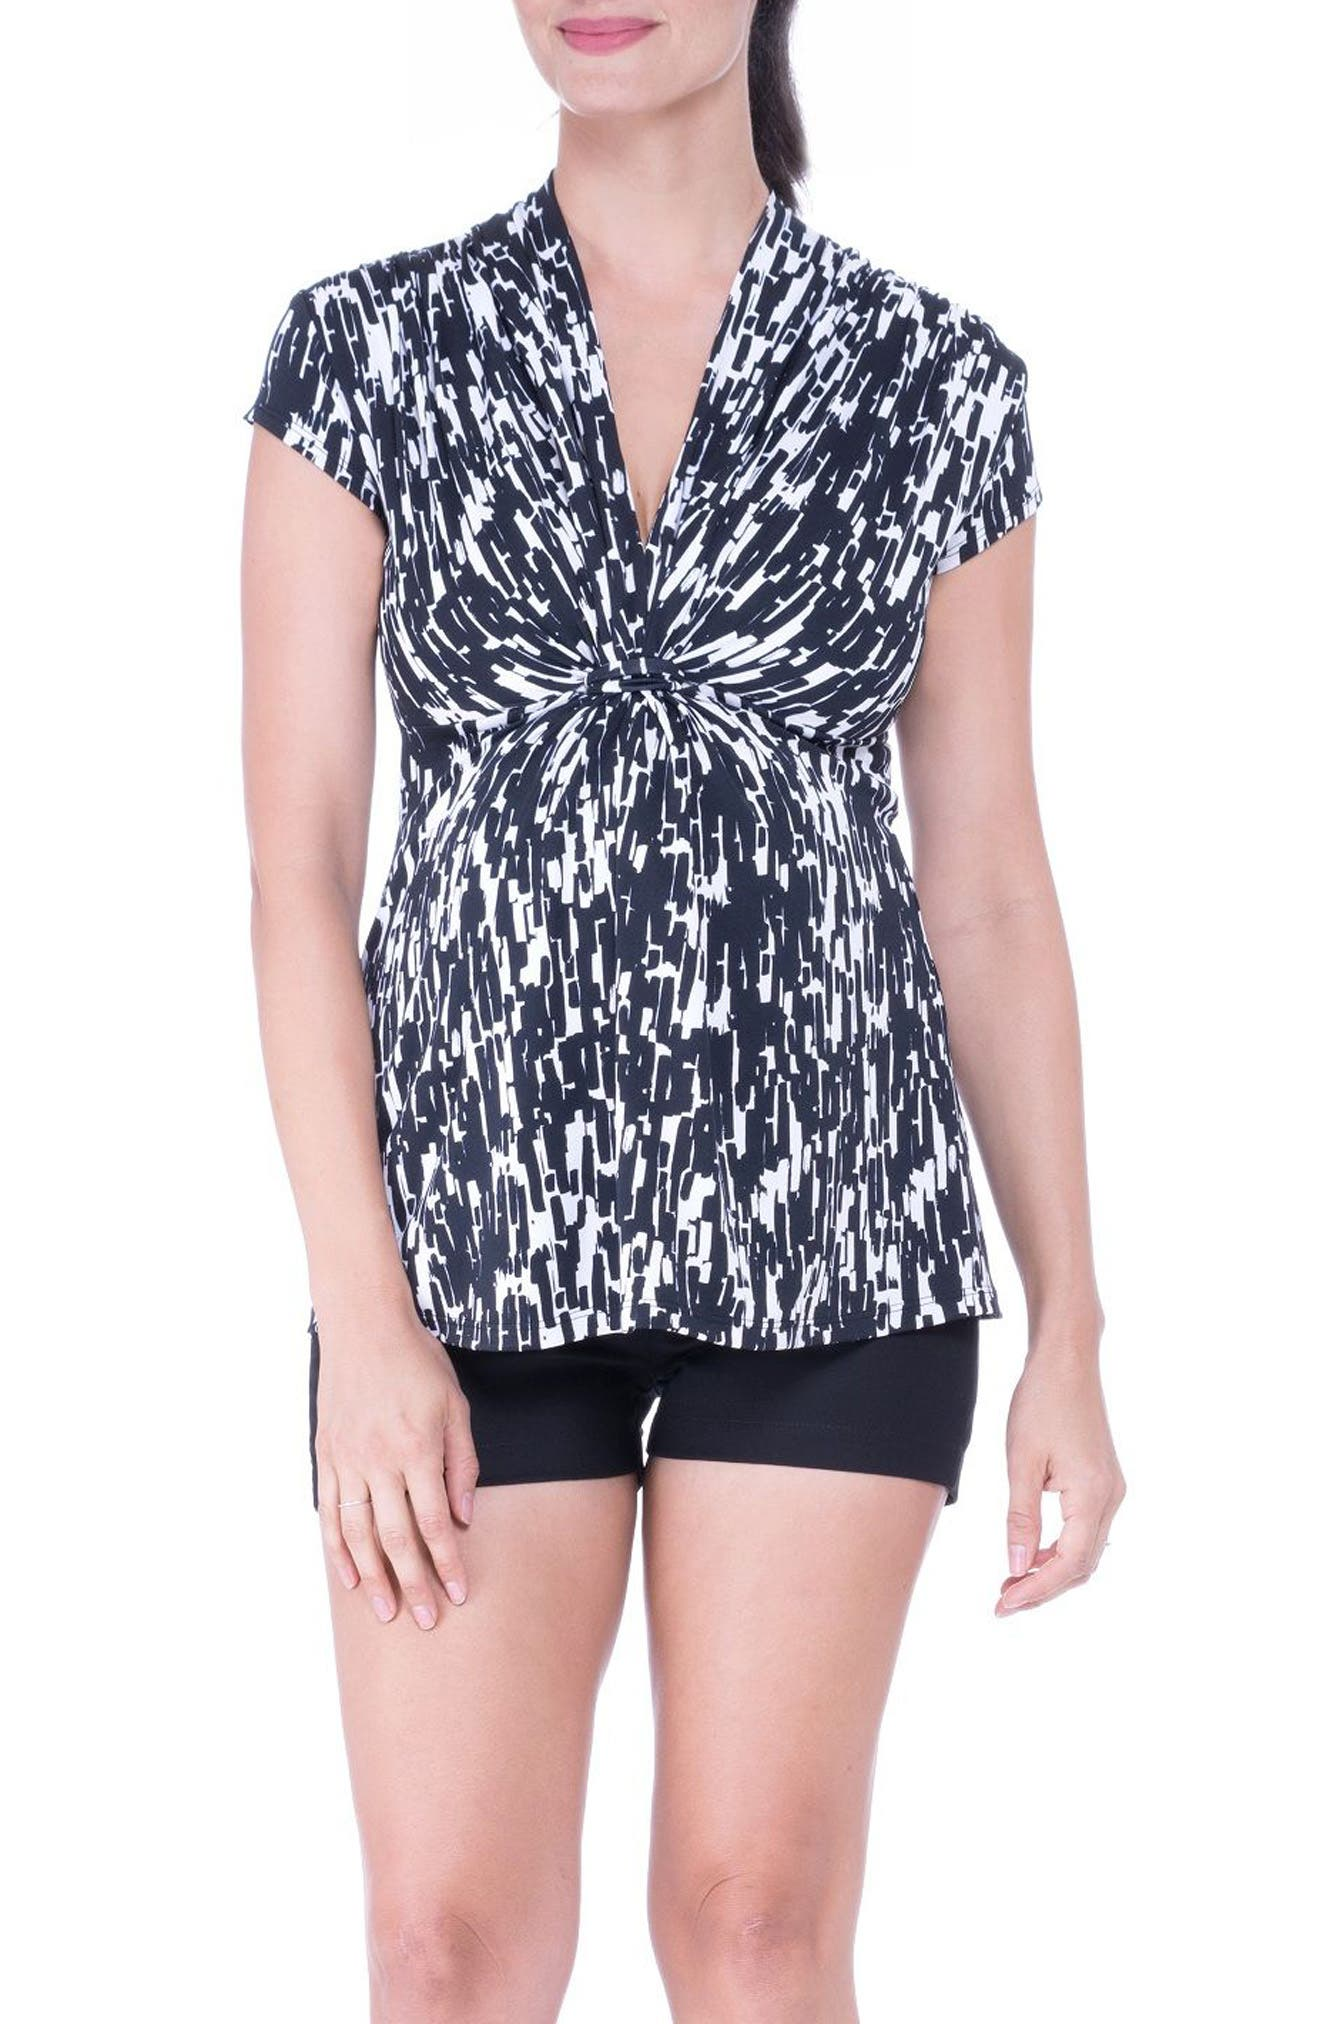 Knot Maternity Top,                         Main,                         color, Black/ White